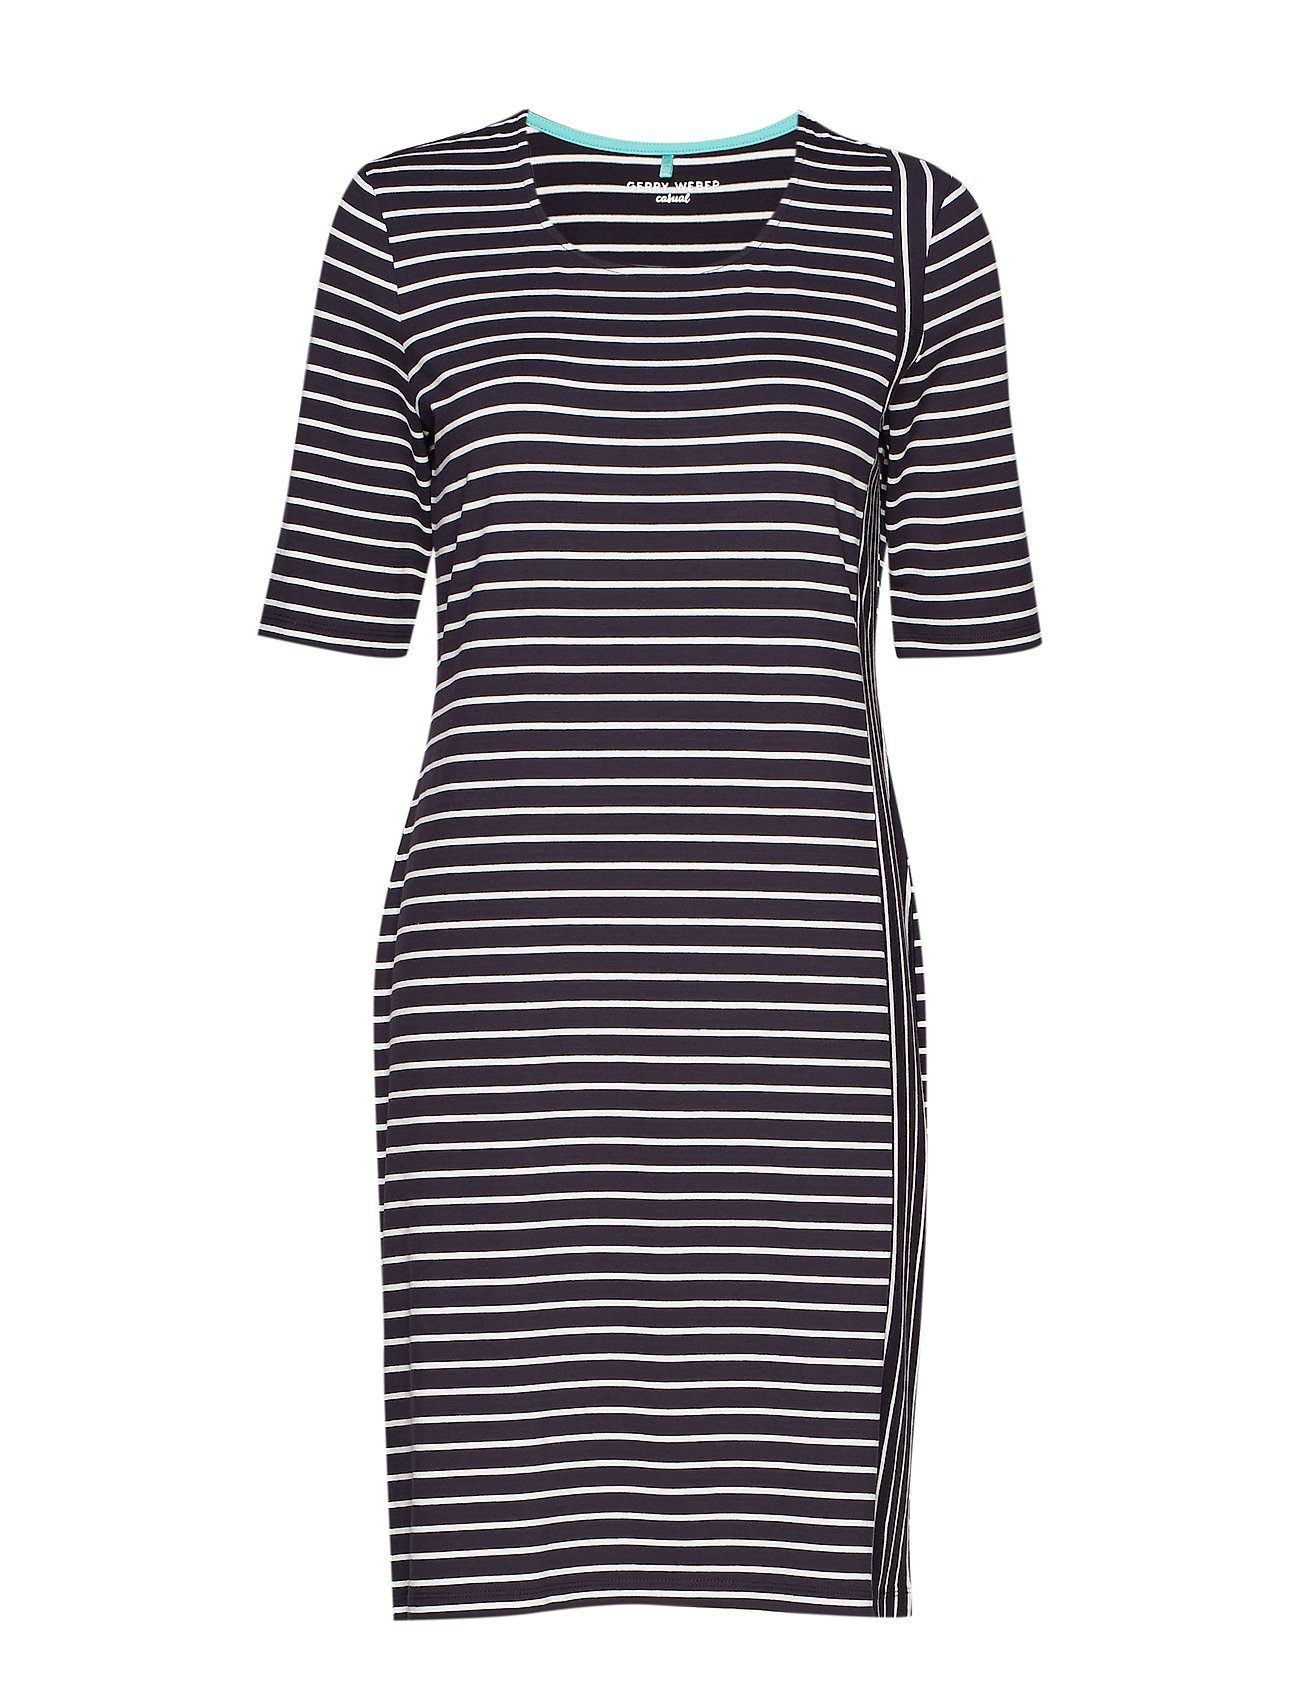 Gerry Weber Edition DRESS KNITTED FABRIC - BLUE/ECRU/WHITE PATCH